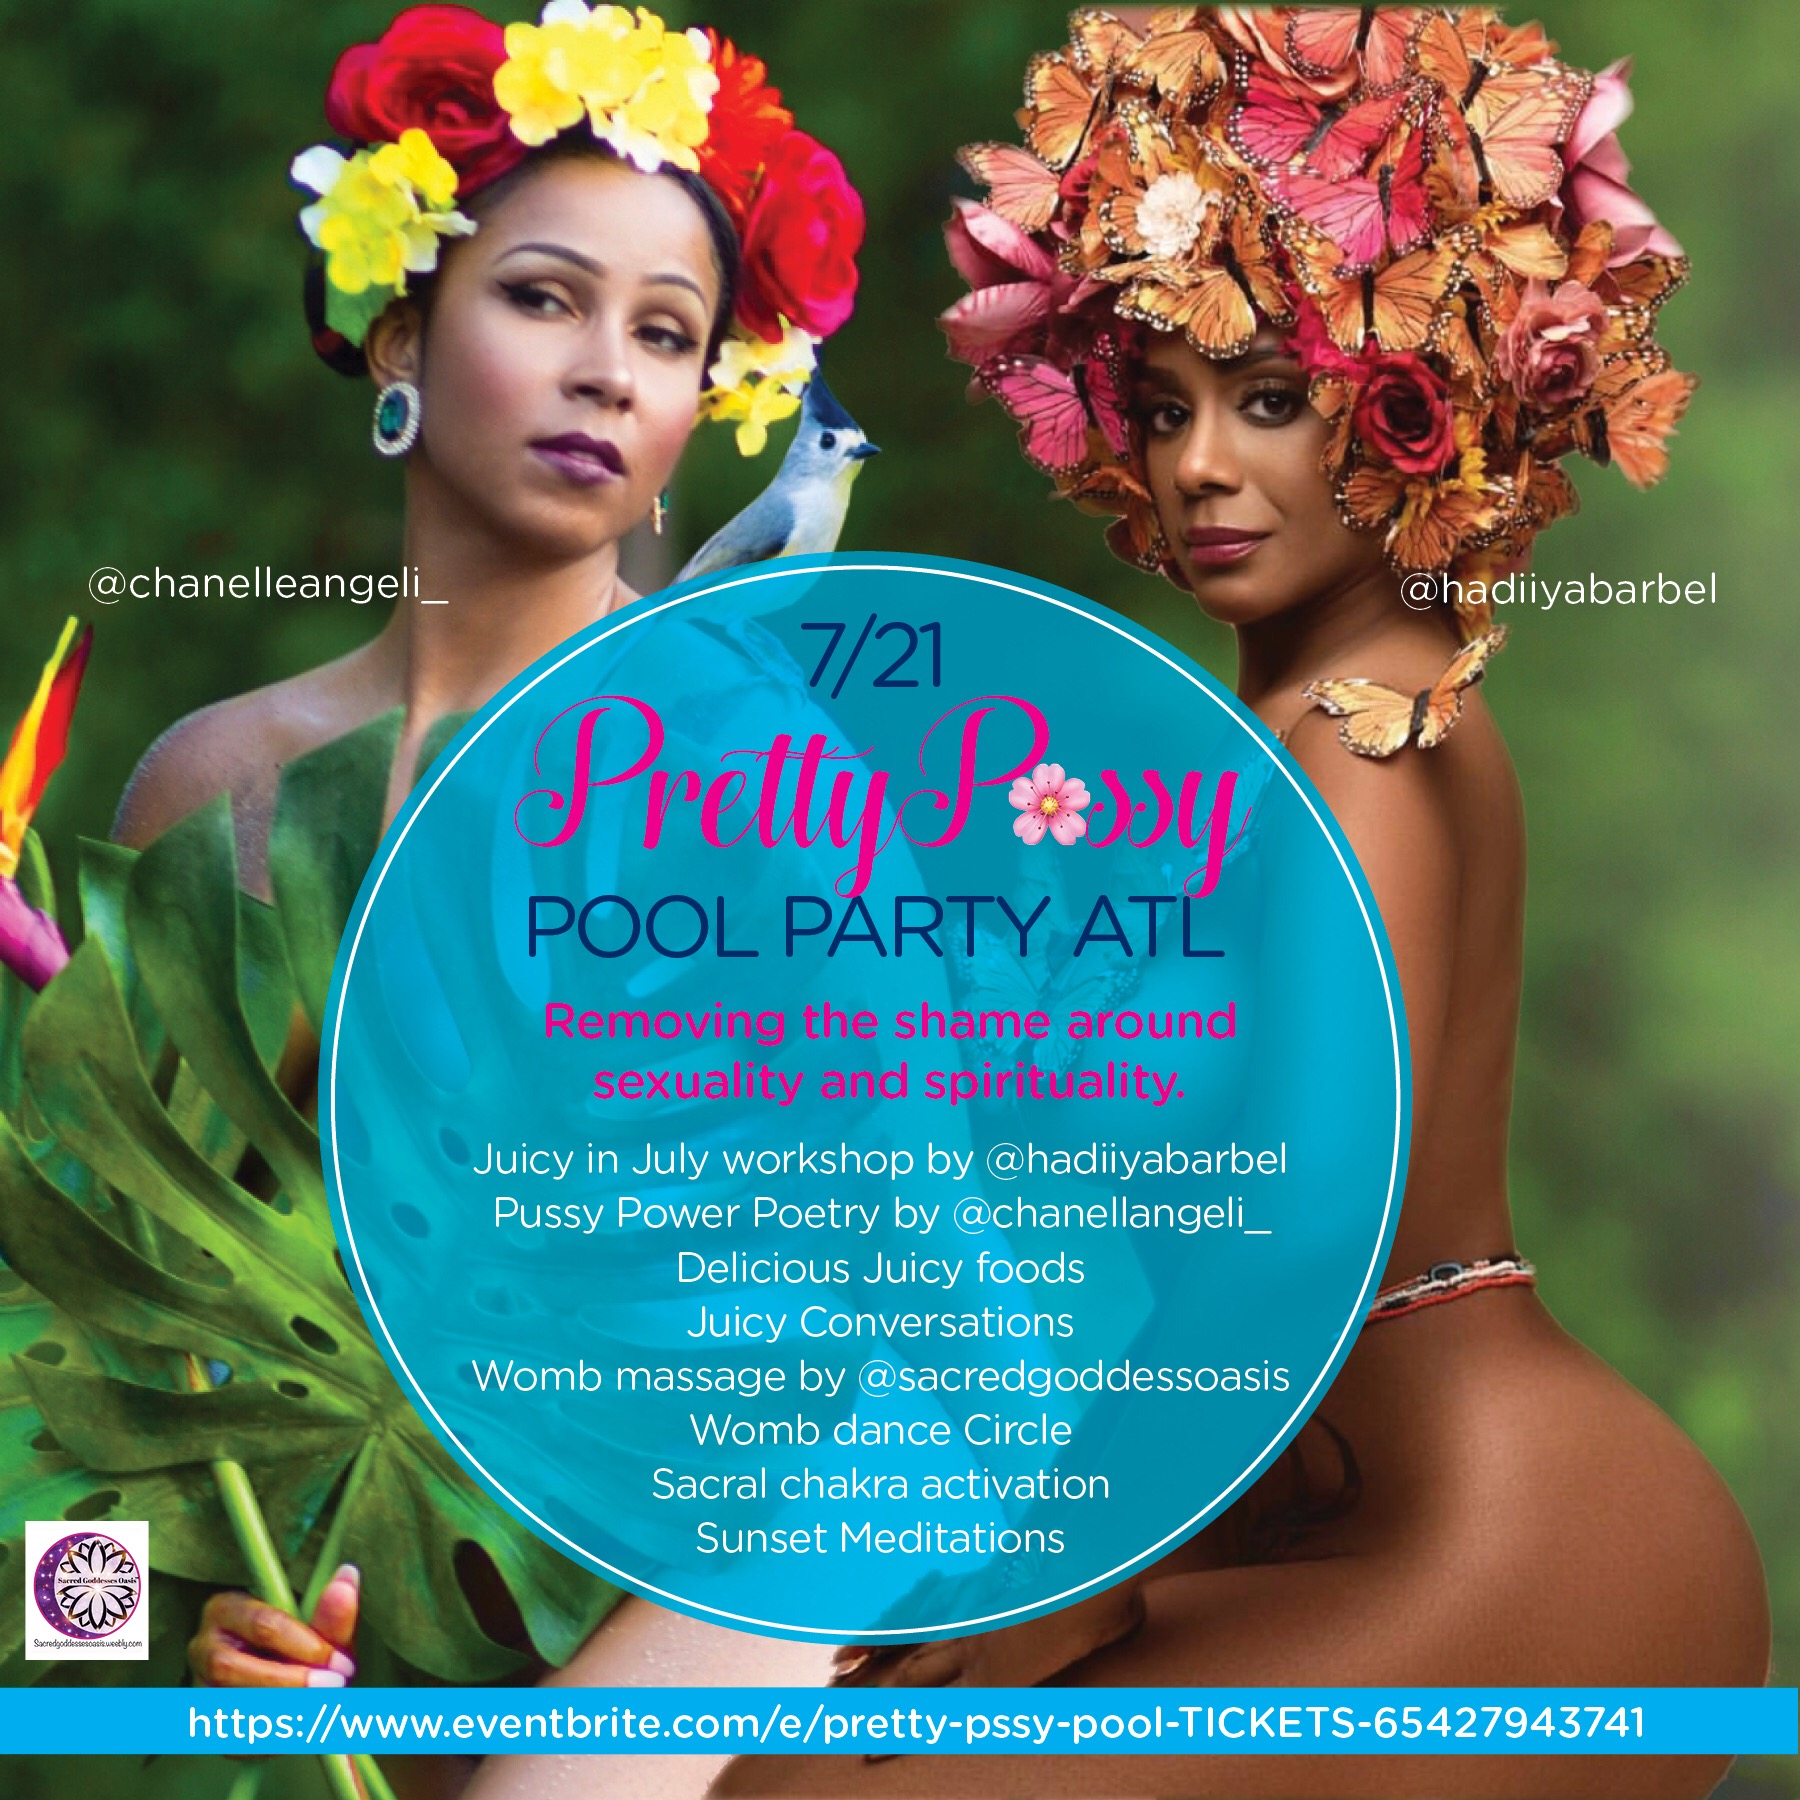 Join me in ATLANTA, GA for the Pretty P🌸ssy Pool Party!